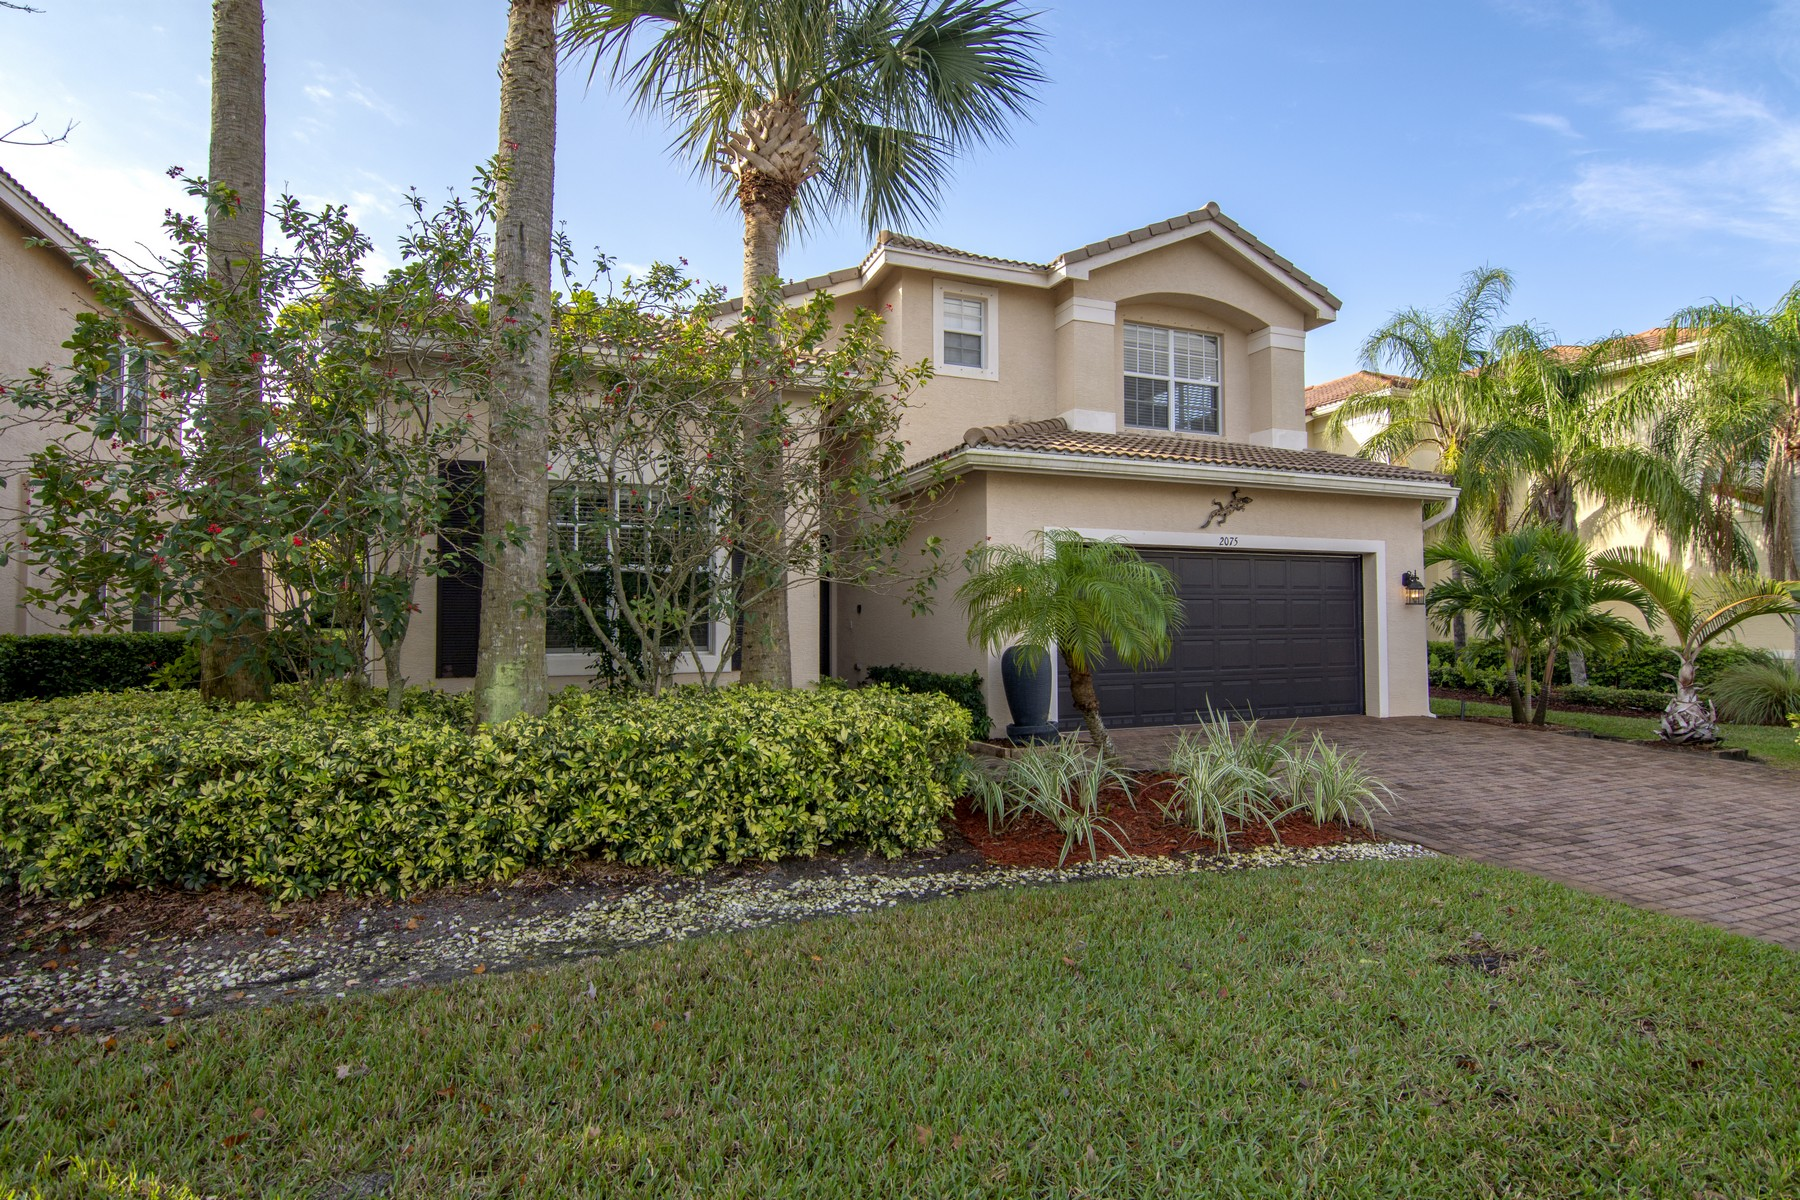 Single Family Home for Sale at Was Model Home, Still Looks Incredible 2075 Grey Falcon Cir SW Vero Beach, Florida 32962 United States